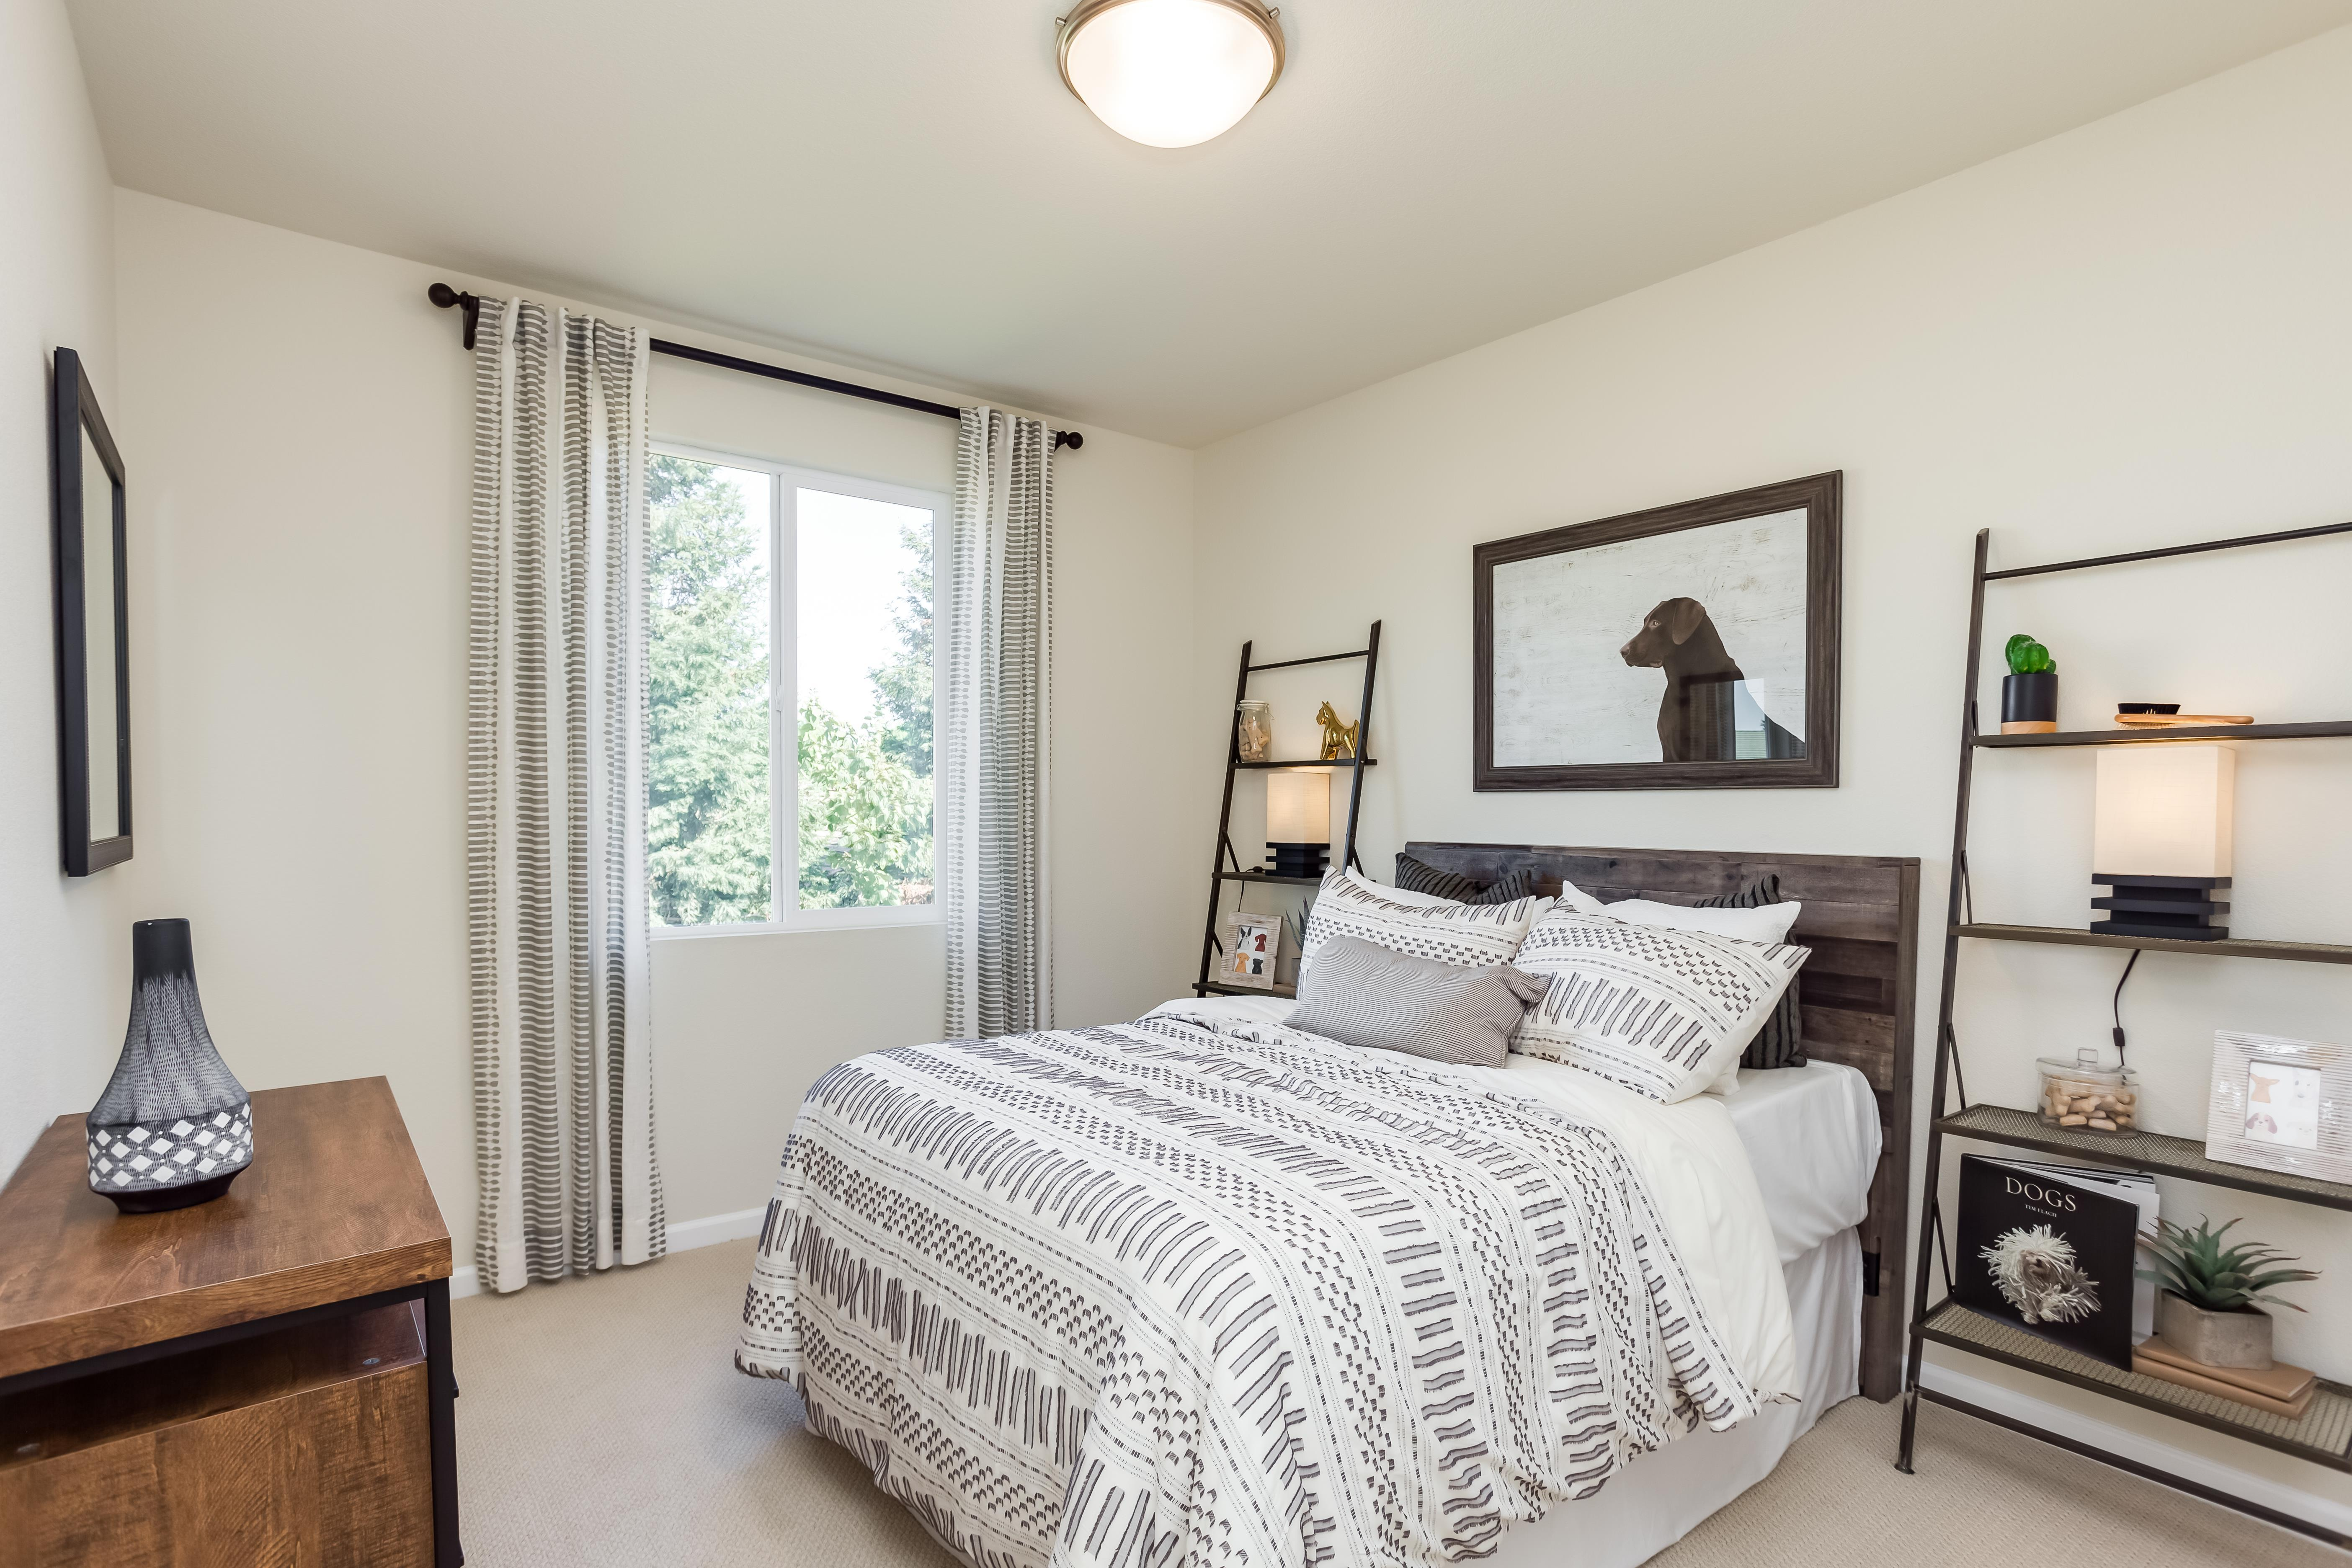 Bedroom featured in the Residence Four By Bright Homes in Merced, CA